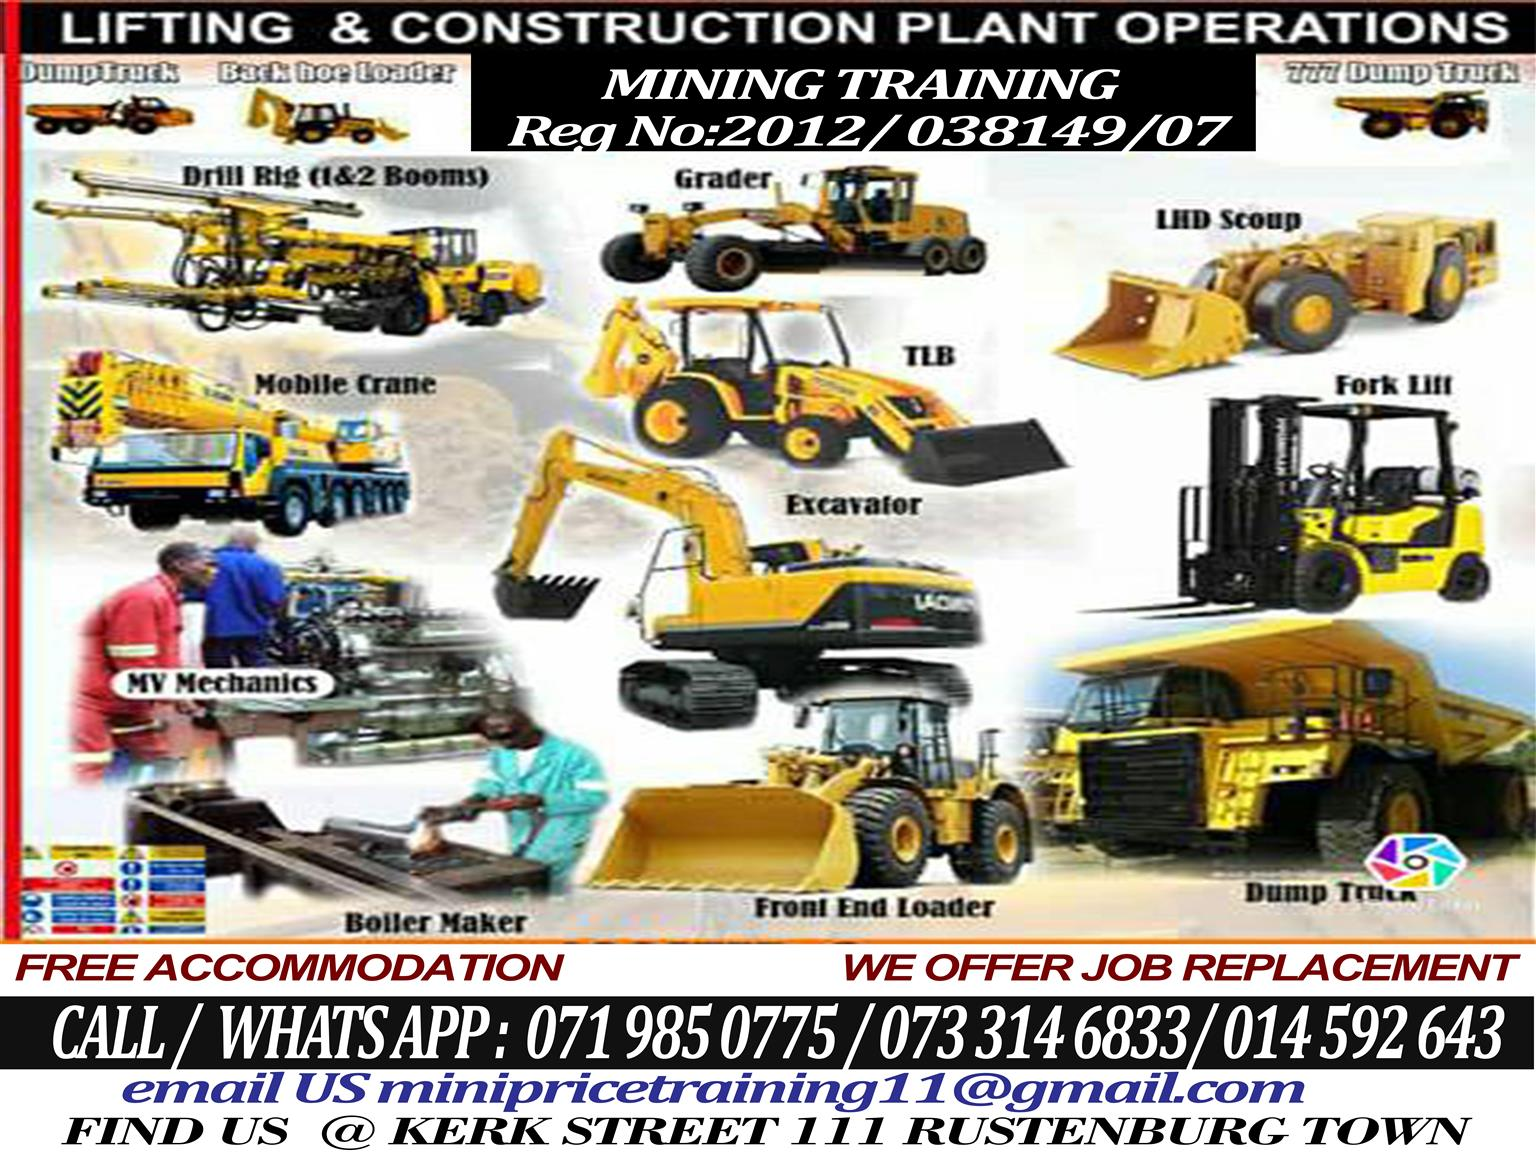 Full Excavator course, Boilermaker classes LHD scoop Drill rig training 0733146833. south africa